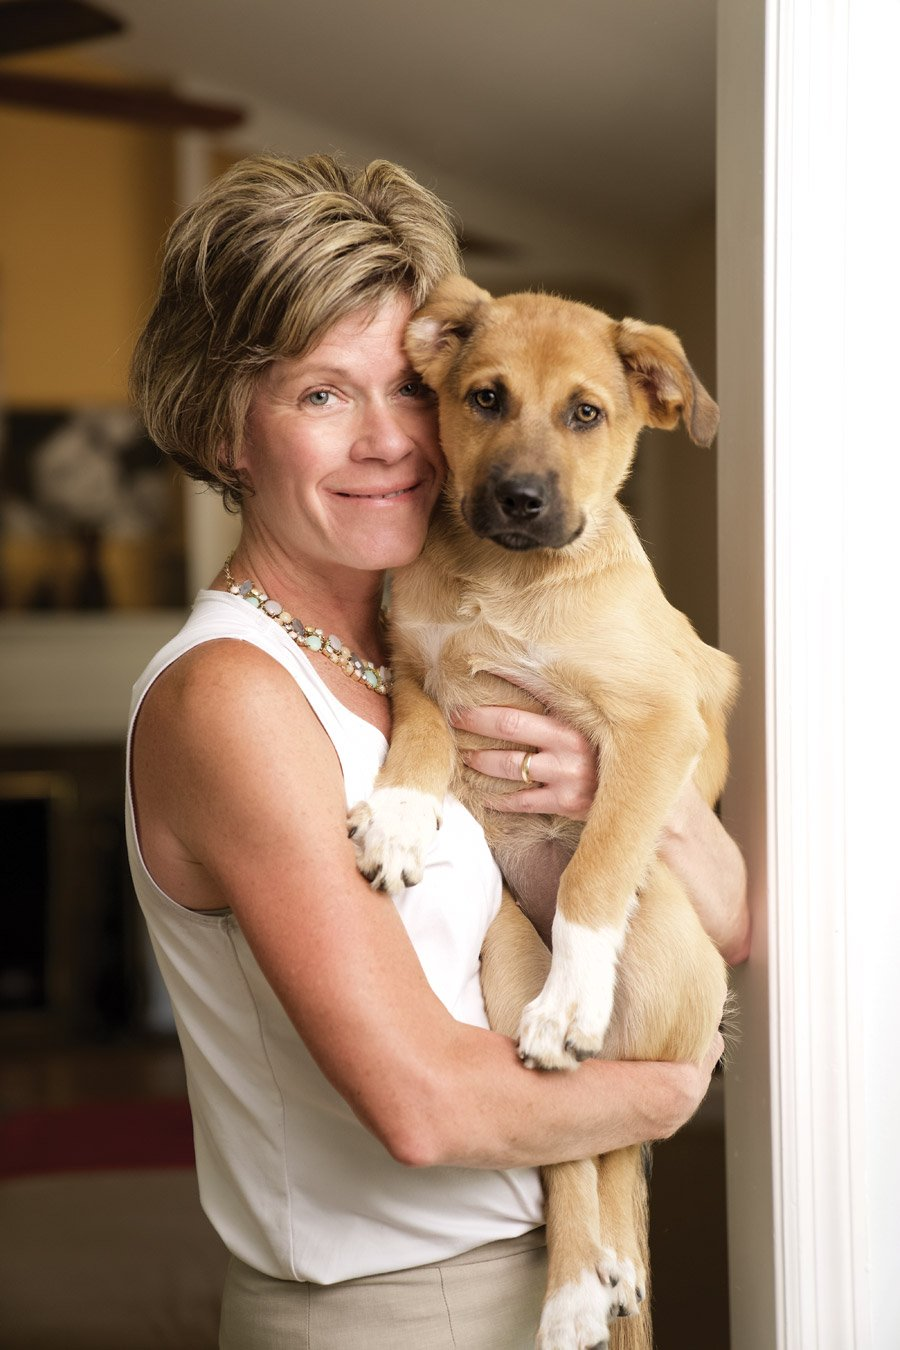 Julie Calvert, President and CEO of the Cincinnati USA Convention & Visitors Bureau, with family pet Dakotah, a rescue from Save the Animals Foundation; photo by Tina Gutierrez